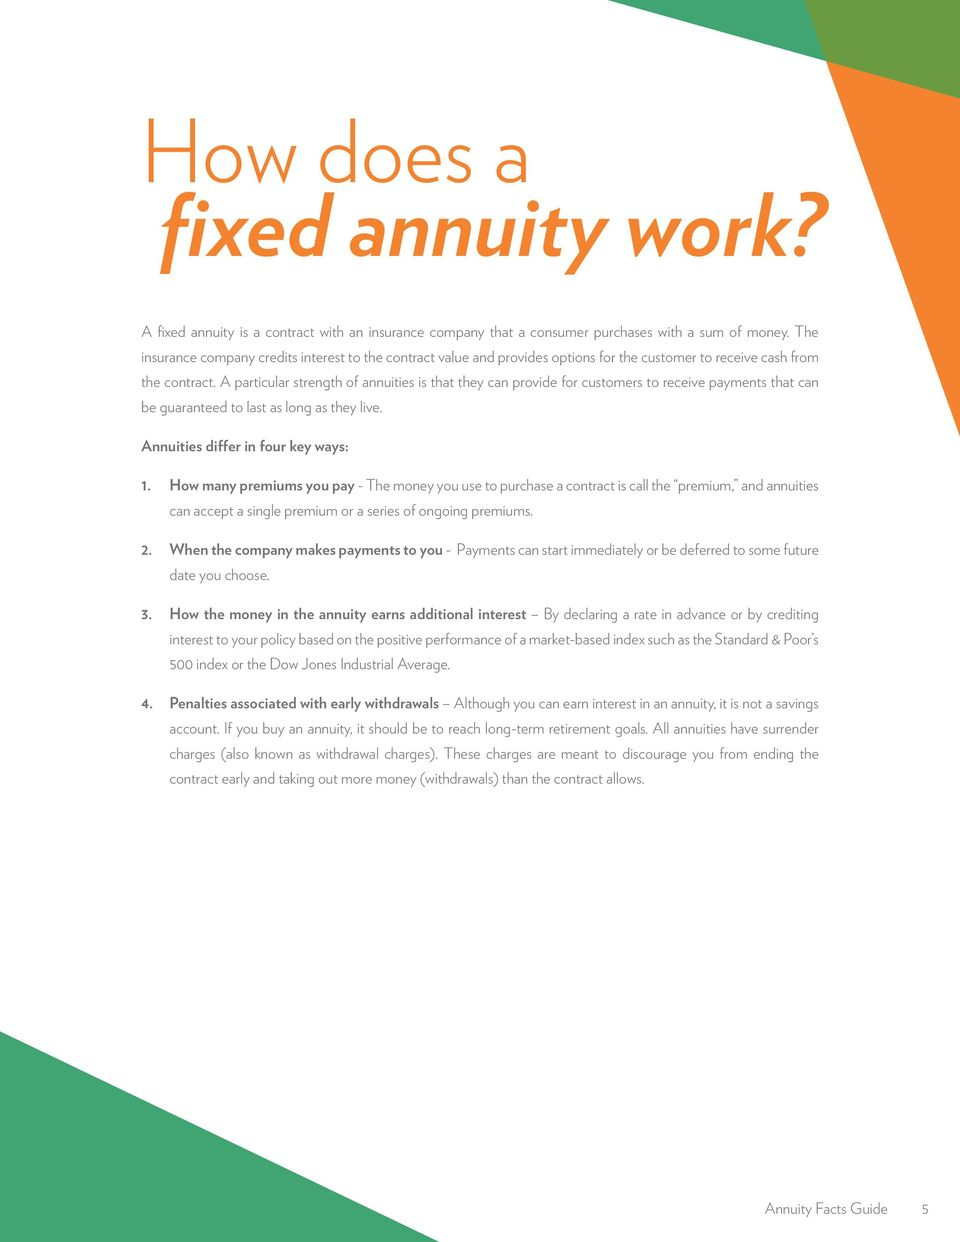 A particular strength of annuities is that they can provide for customers to receive payments that can be guaranteed to last as long as they live. Annuities differ in four key ways: 1.